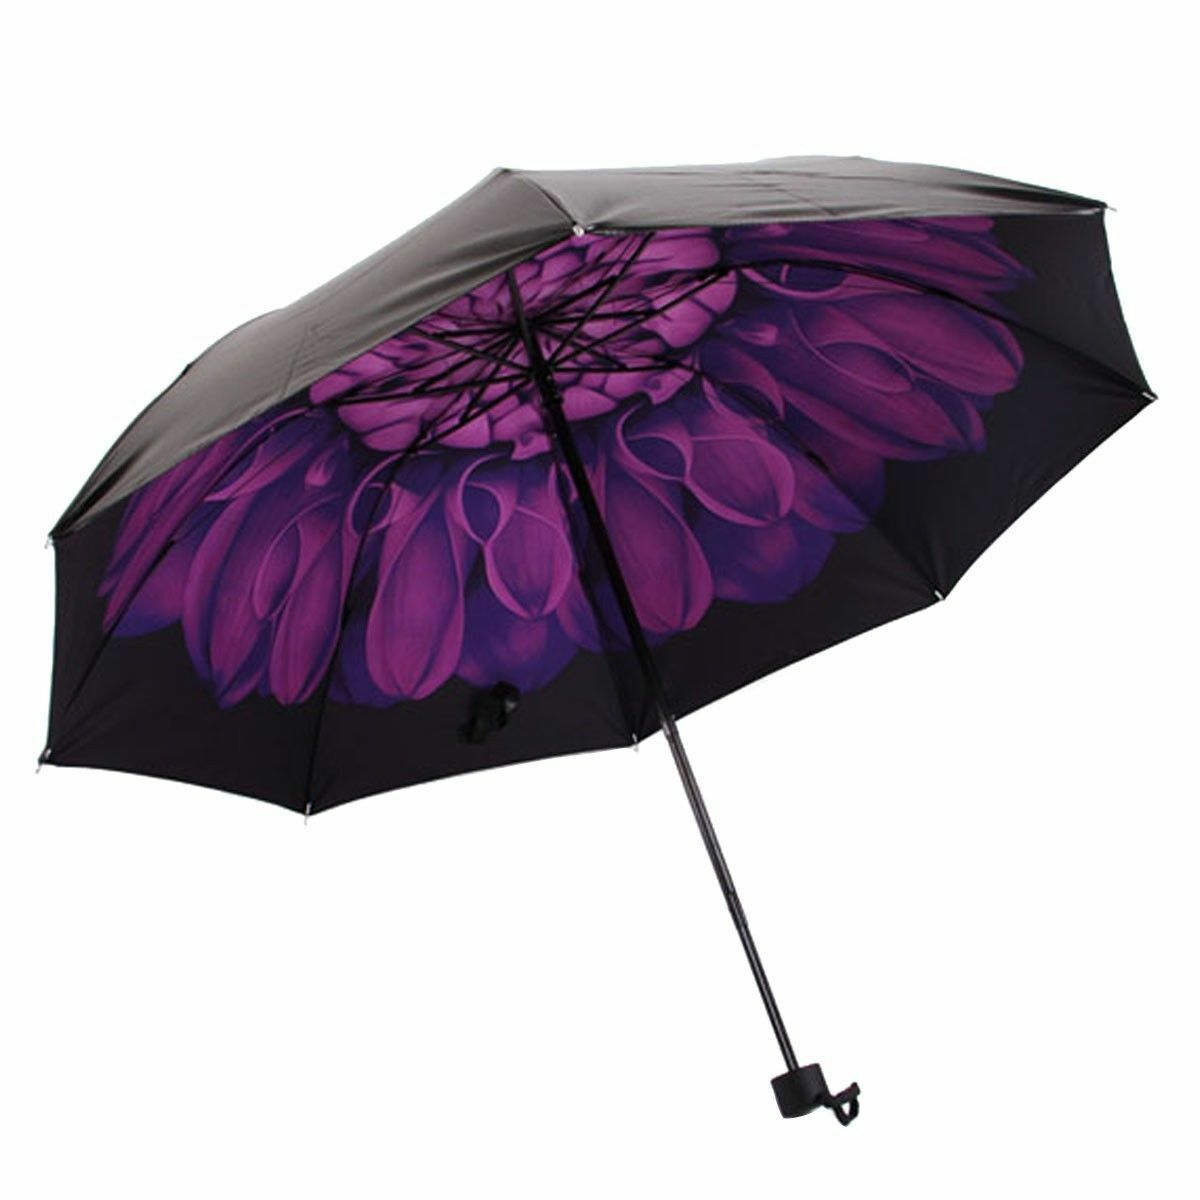 windproof waterproof compact folding floral flowers umbrella parasol anti uv sun ebay. Black Bedroom Furniture Sets. Home Design Ideas